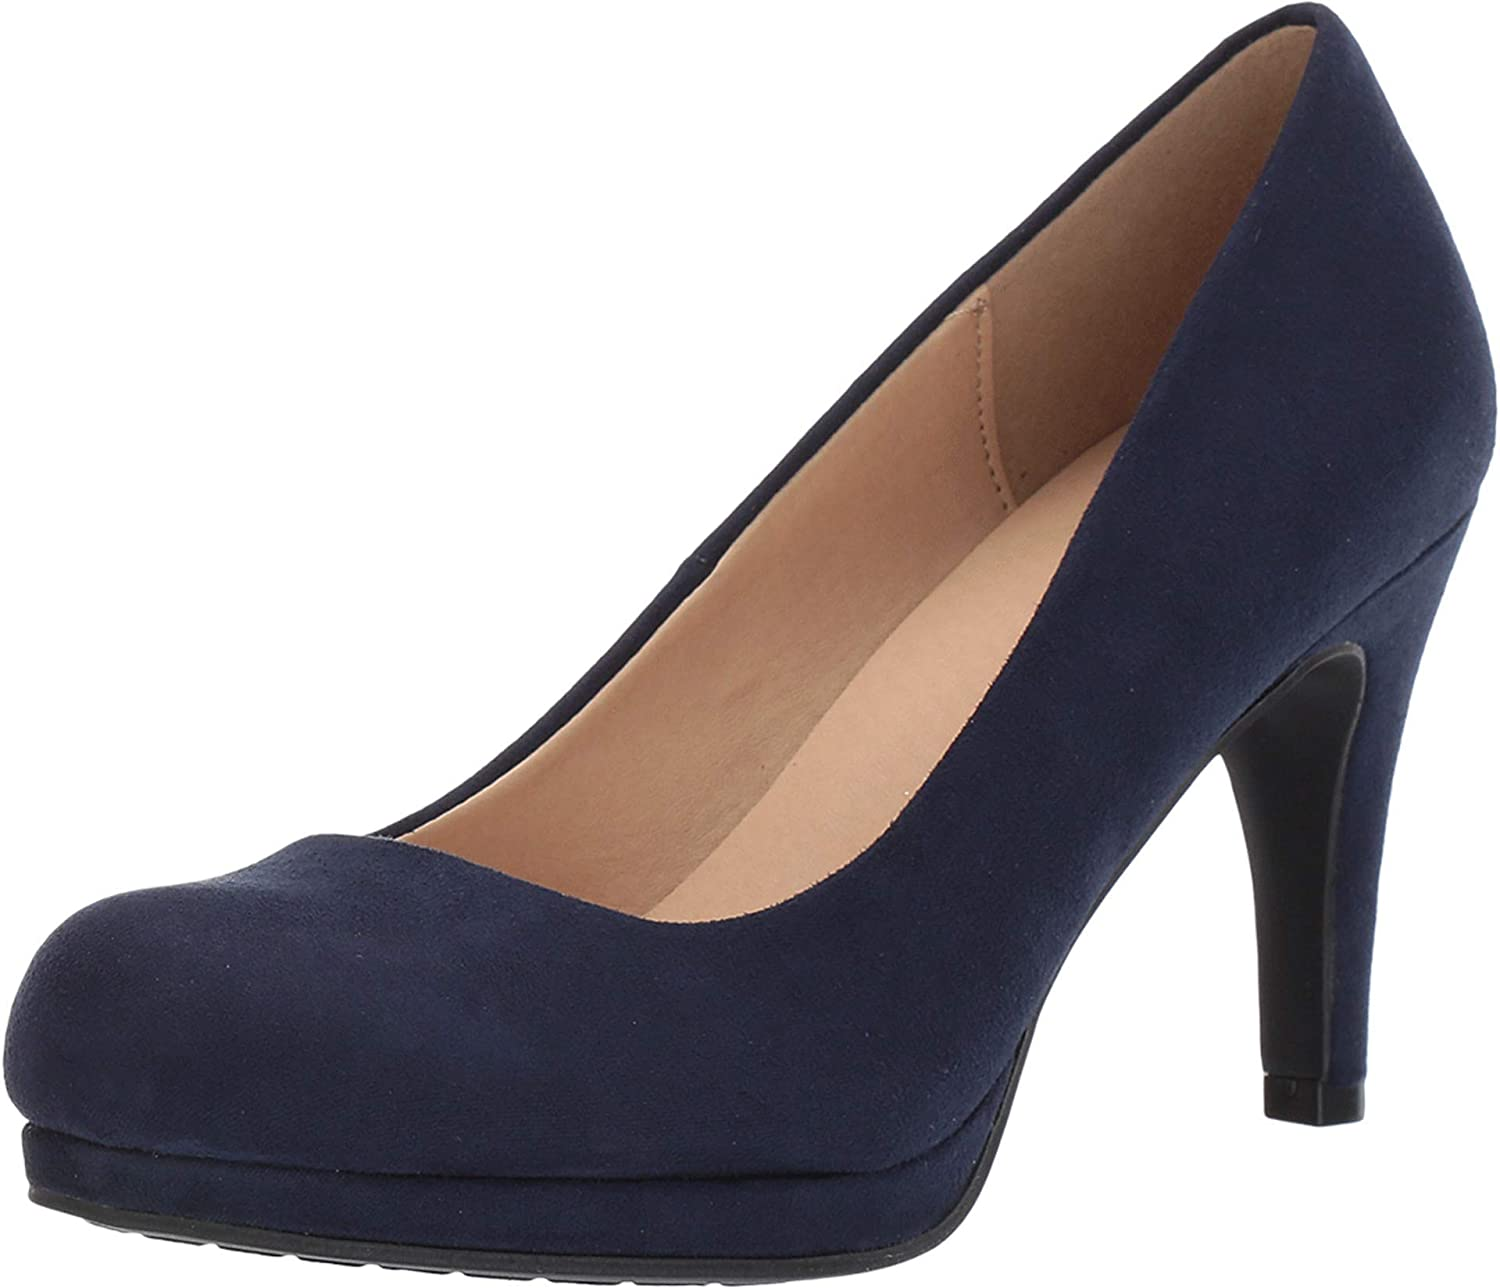 CL by Chinese Laundry Women's Nilah Pump